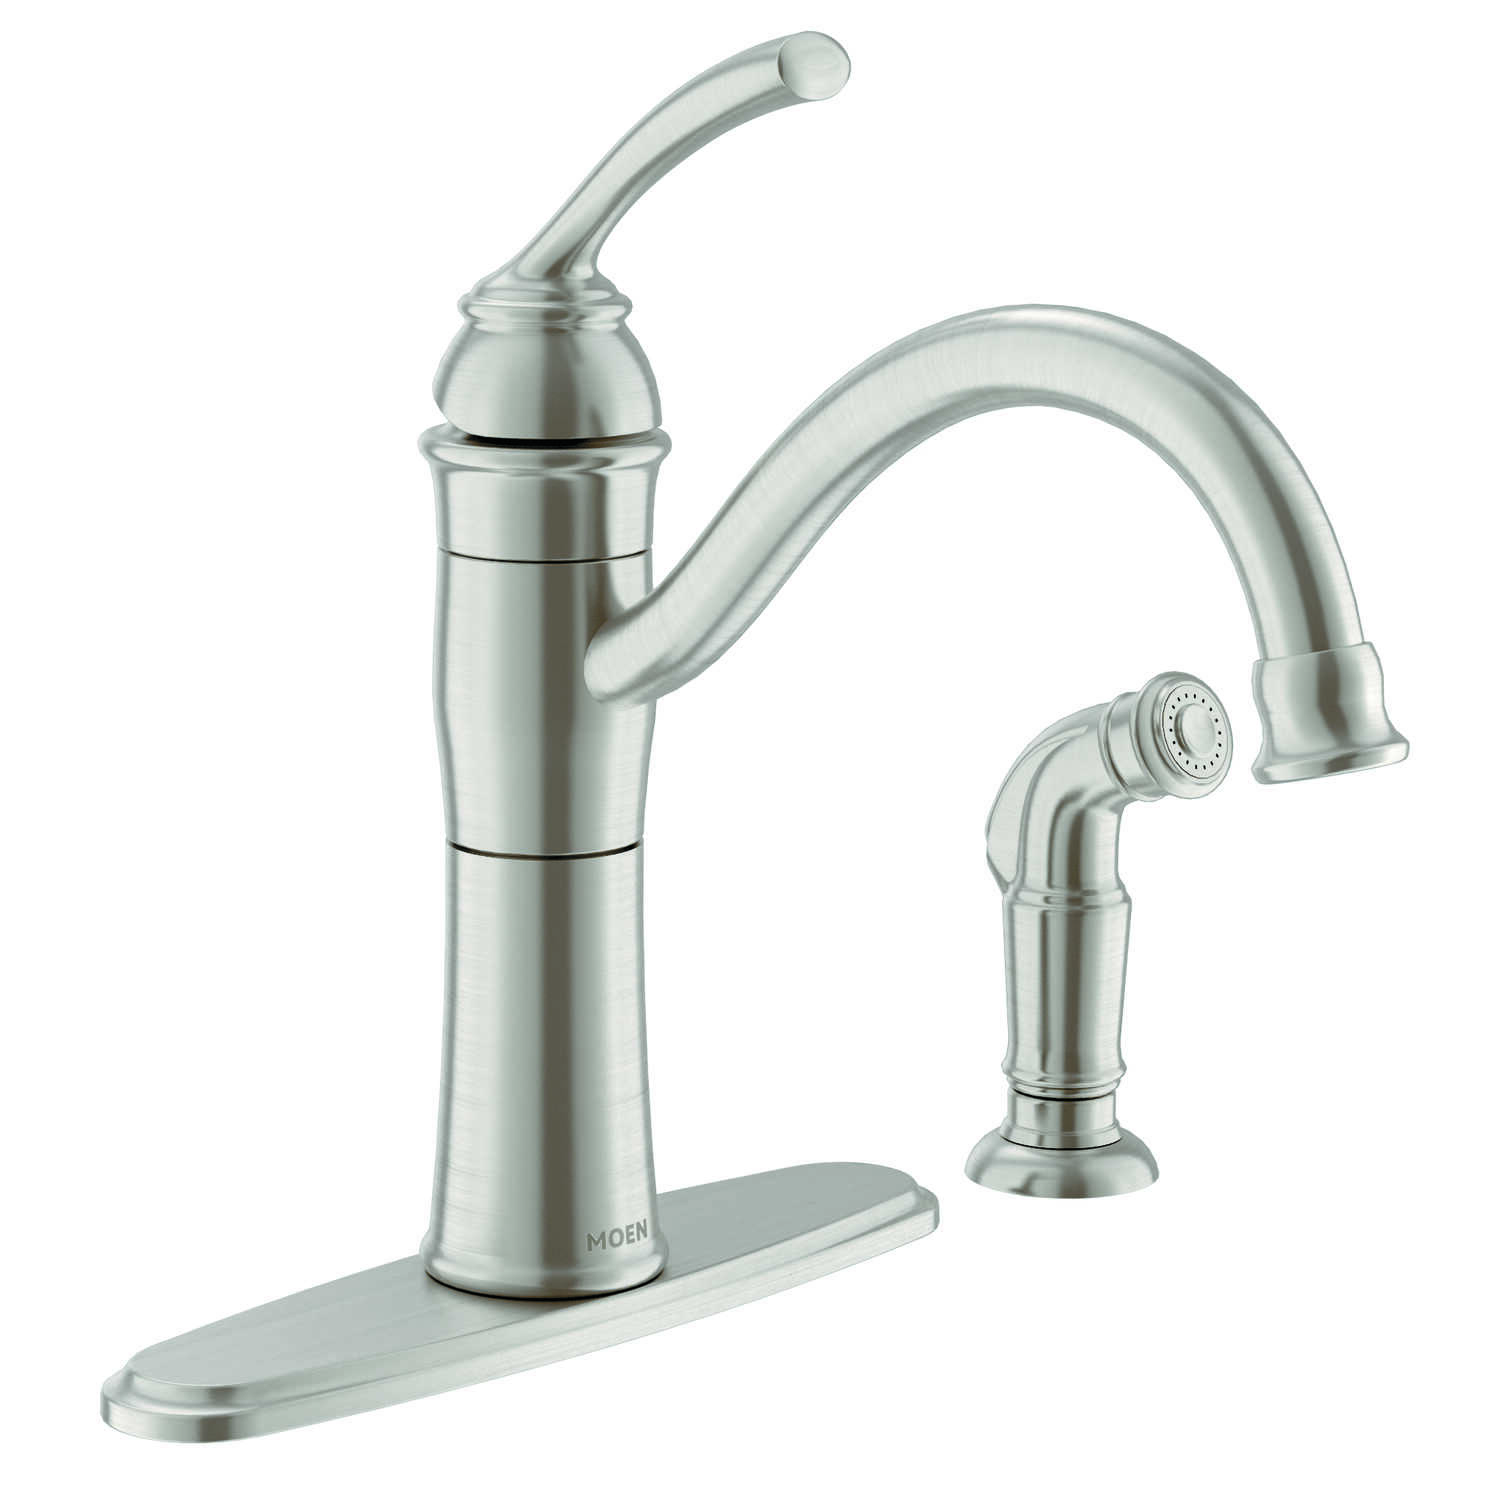 Moen Braemore Side Sprayer Included Kitchen Faucet Stainless Steel